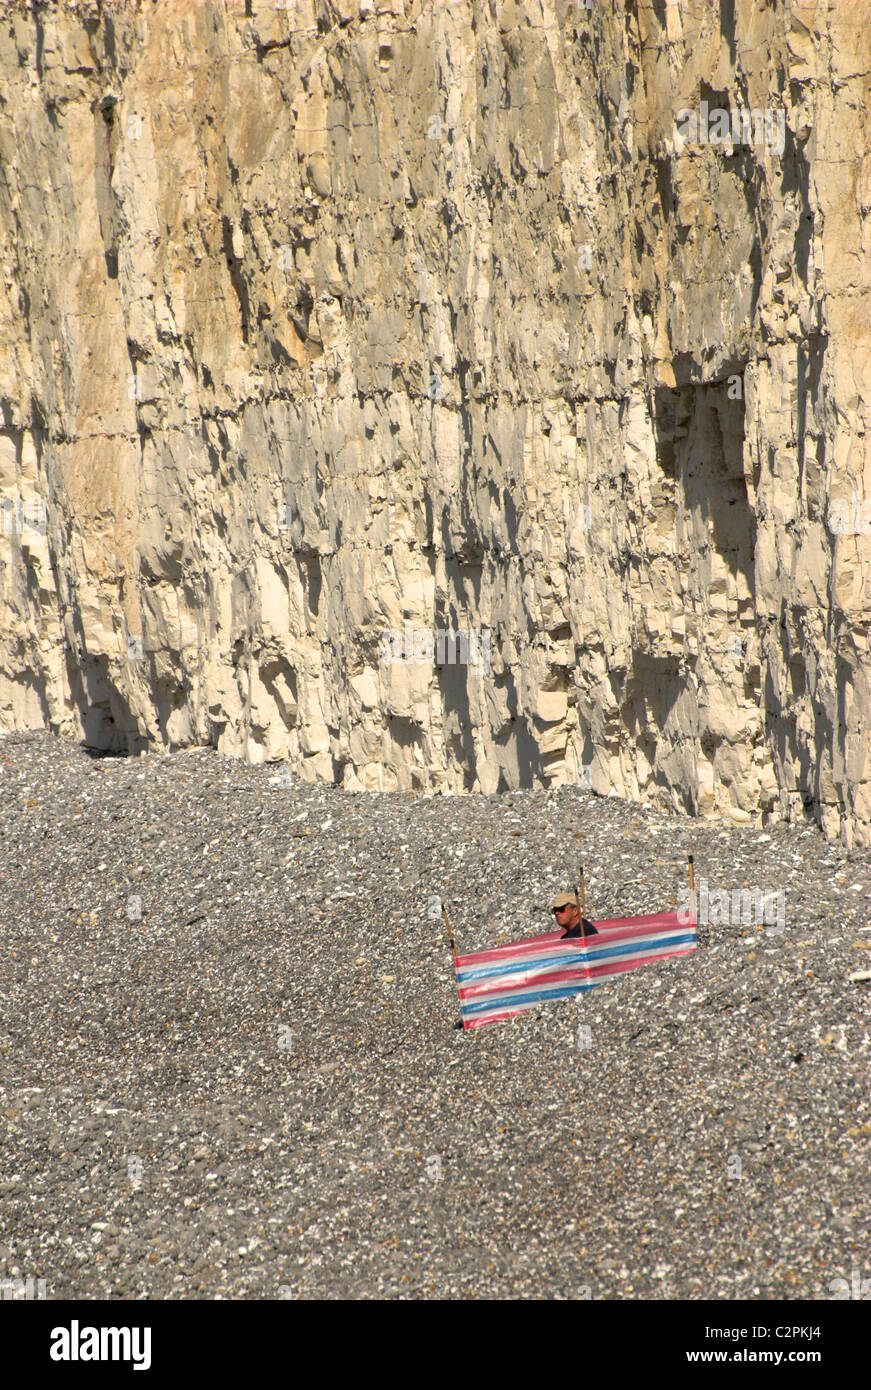 Windbreak and beach goer at Birling Gap in the South Downs National Park. - Stock Image